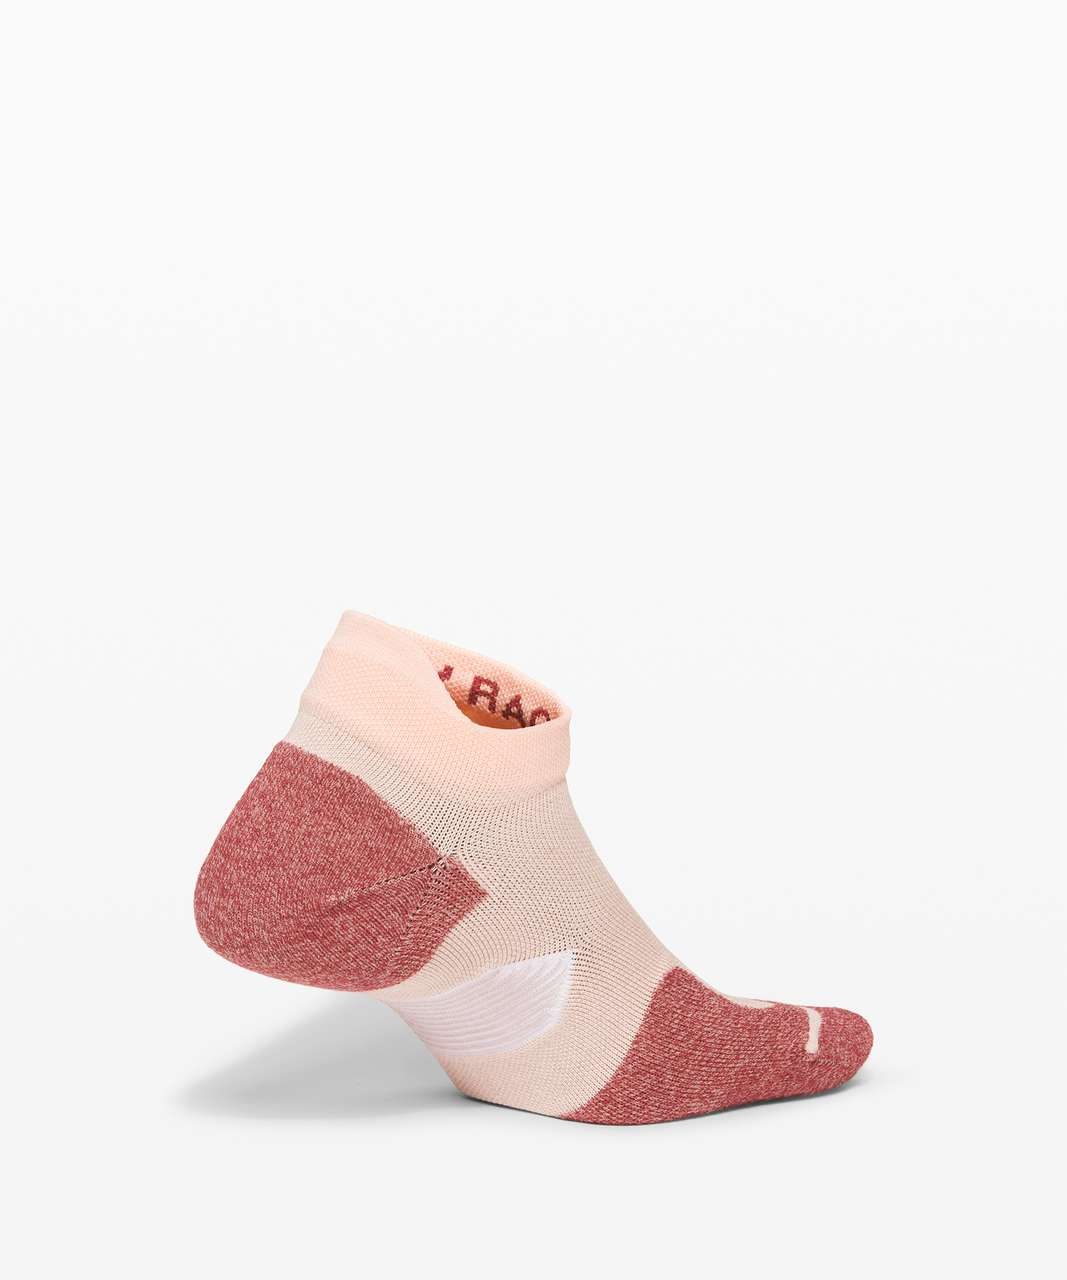 Lululemon Speed Sock *Silver - Ballet Slipper / Chianti